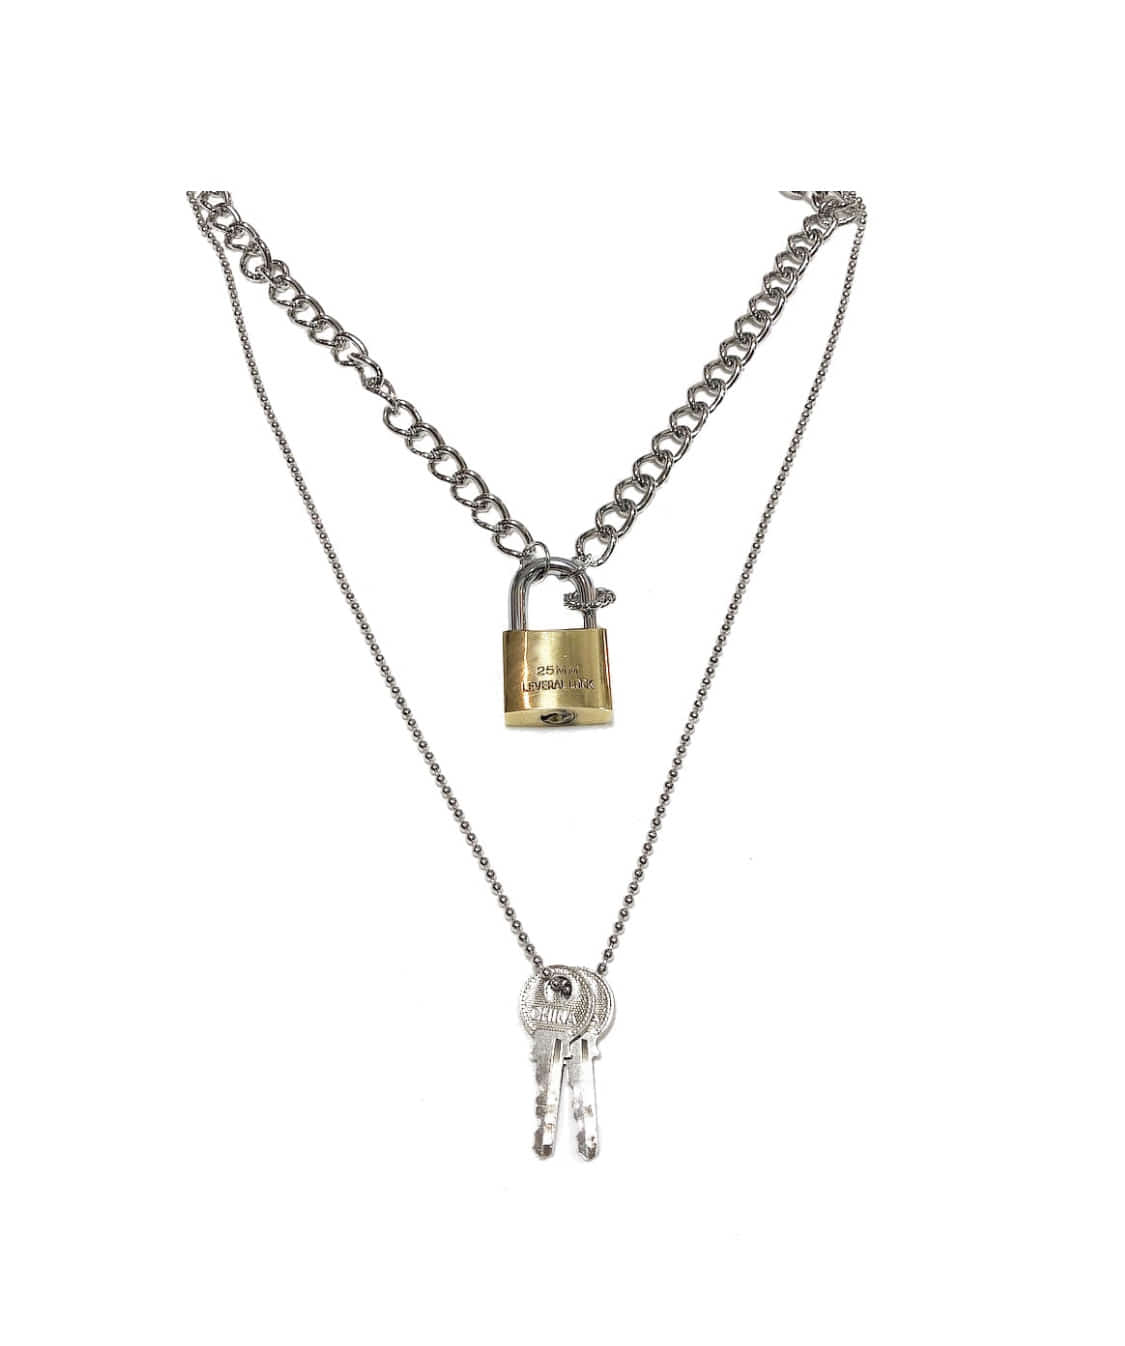 Lock / key necklace